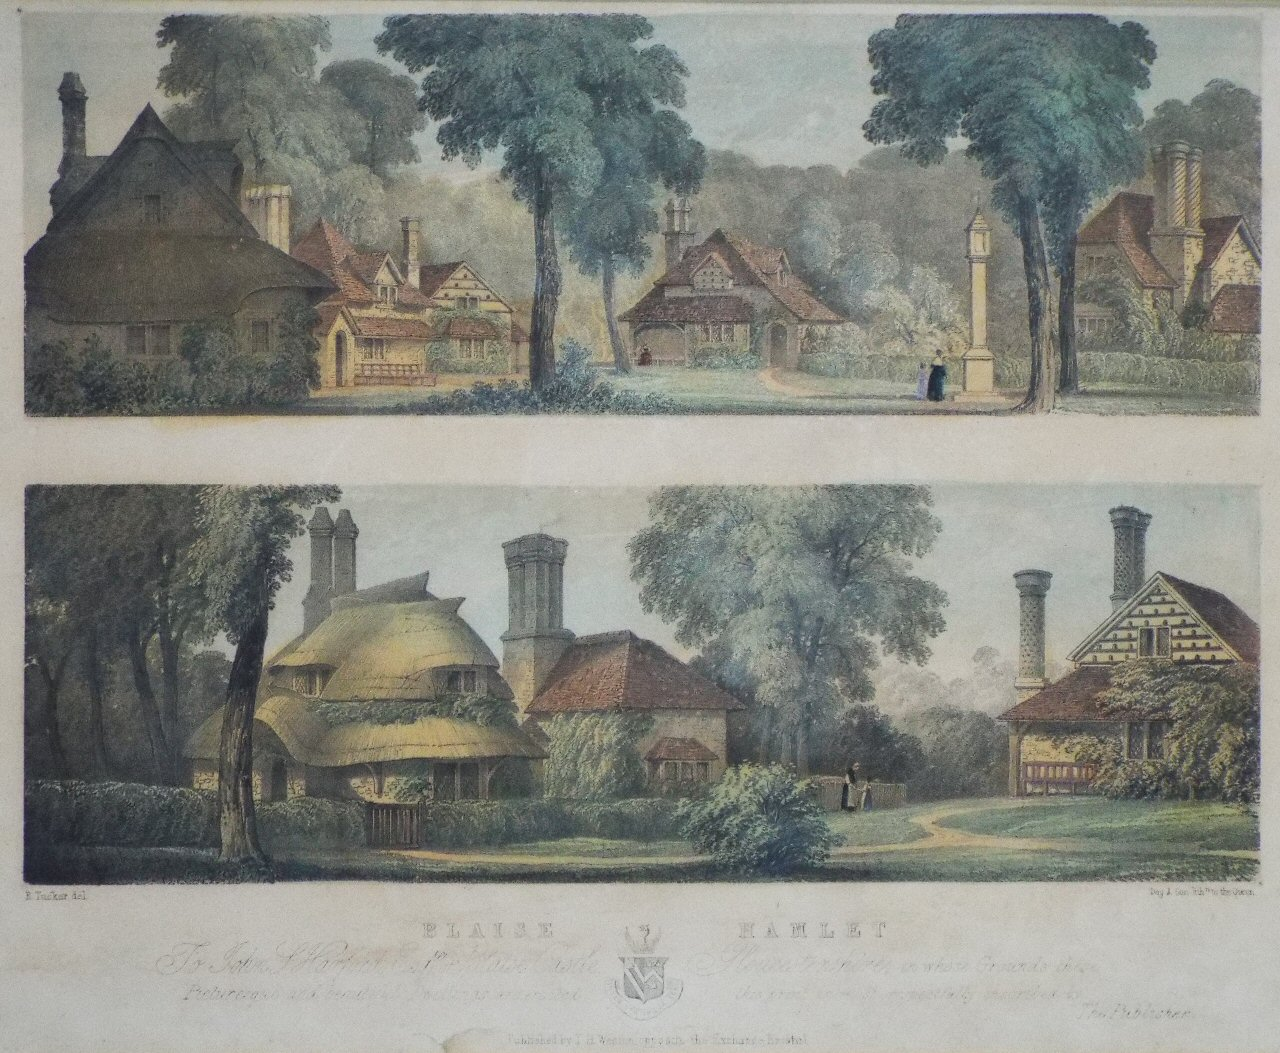 Lithograph - Blaise Hamlet, To John J, Harford Esqre of Blaise Castle, Gloucestershire...